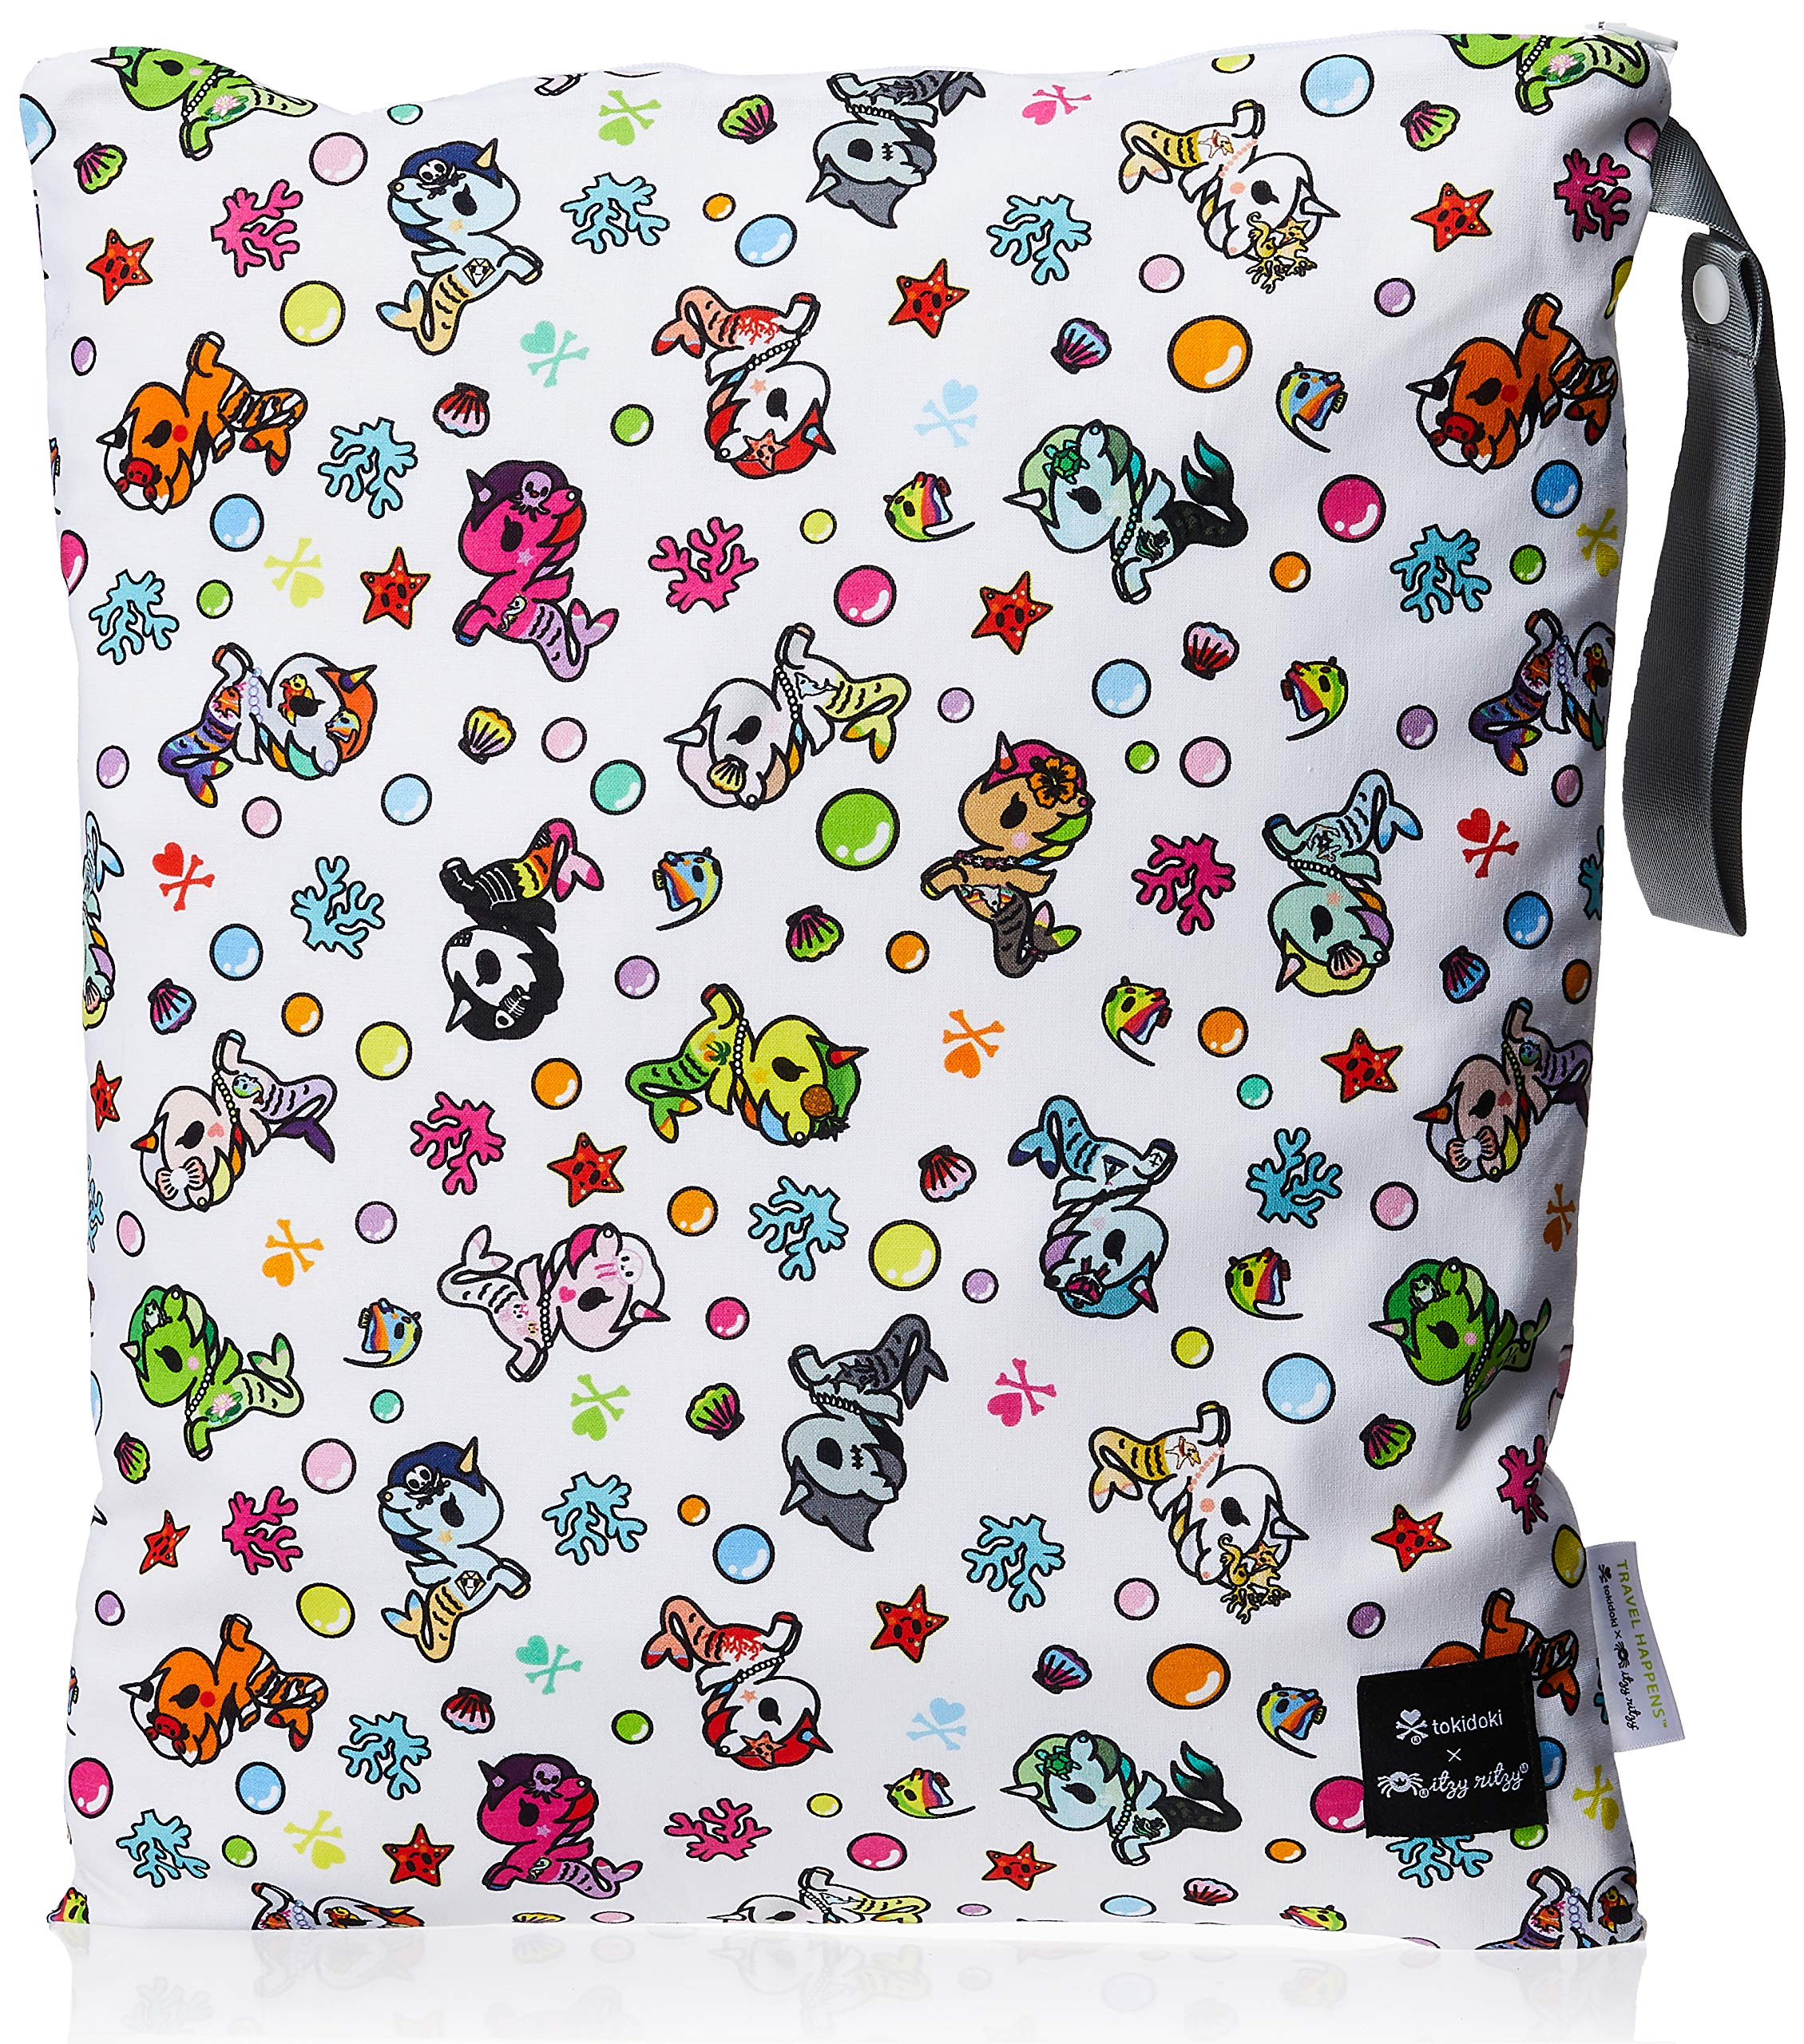 Grab and Go Waterproof Washable Reusable Diaper Wet Dry Cloth Diaper Bags,Lovely Owl